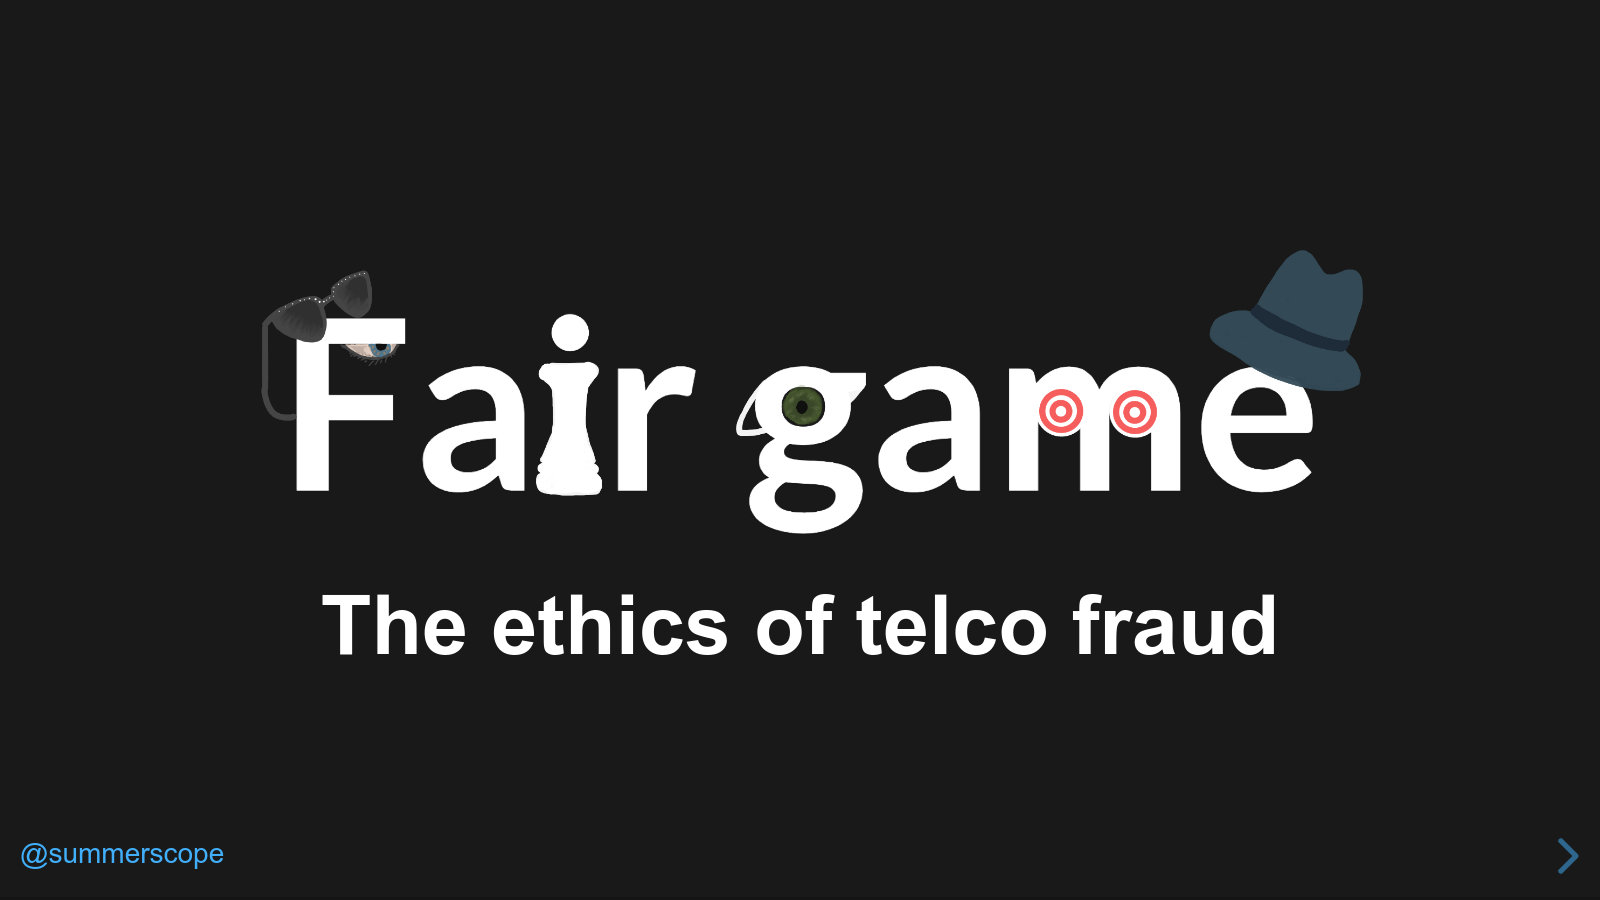 Fair game: the ethics of telco fraud